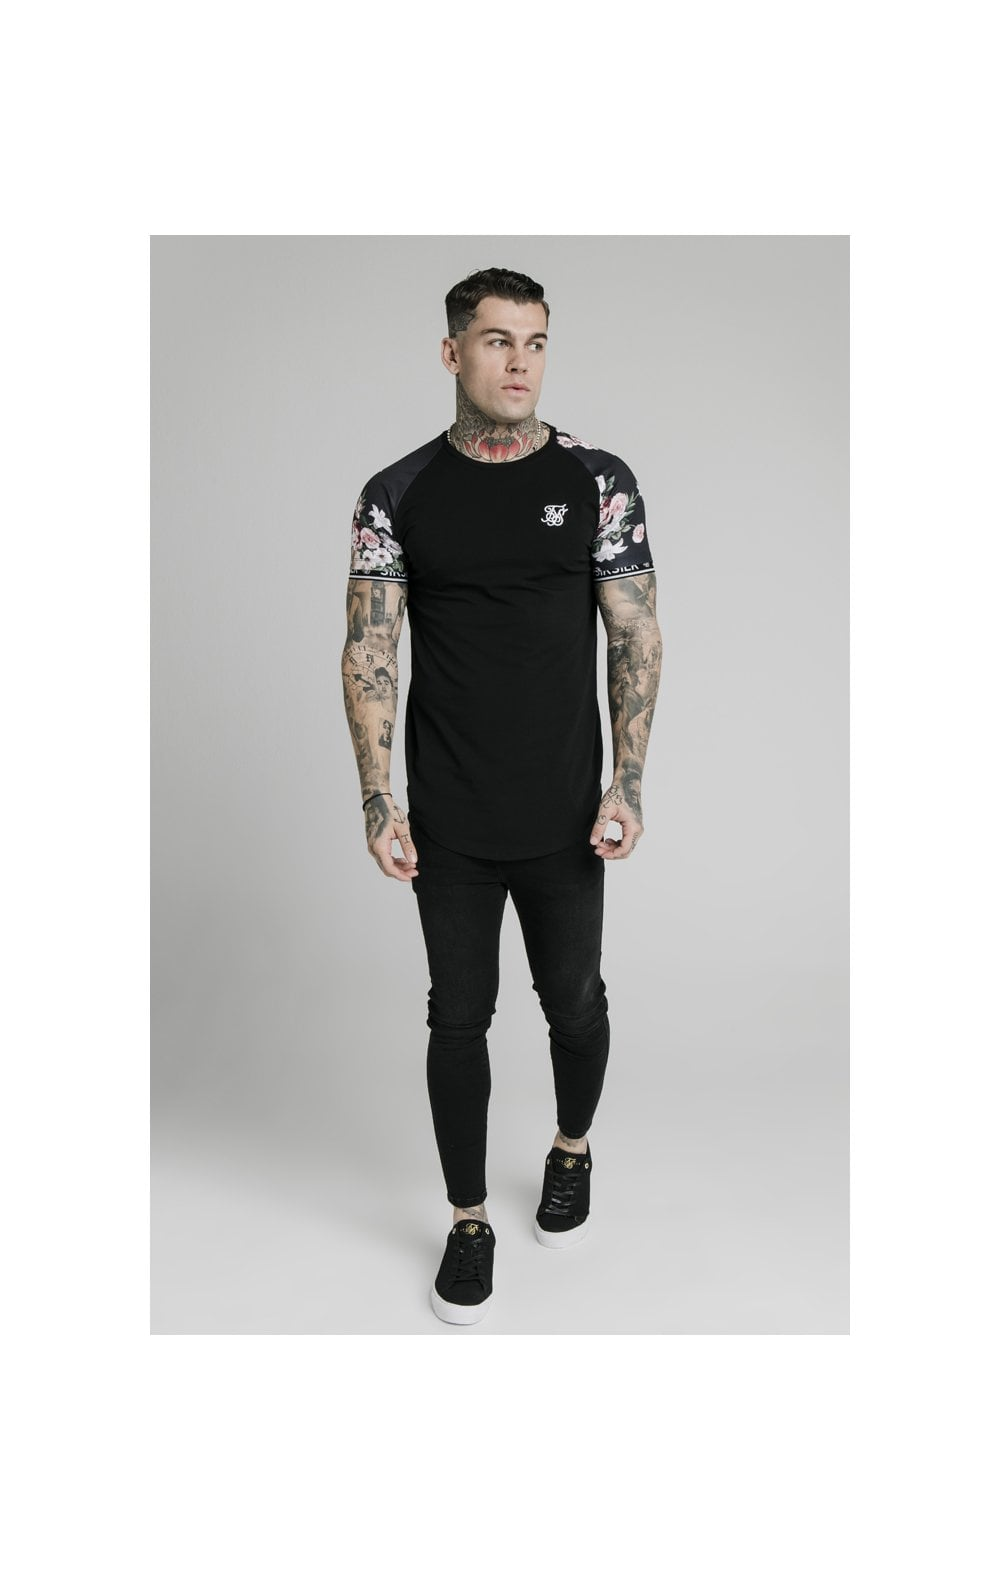 Load image into Gallery viewer, SikSilk S/S Prestige Floral Inset Tech Tee - Black (1)